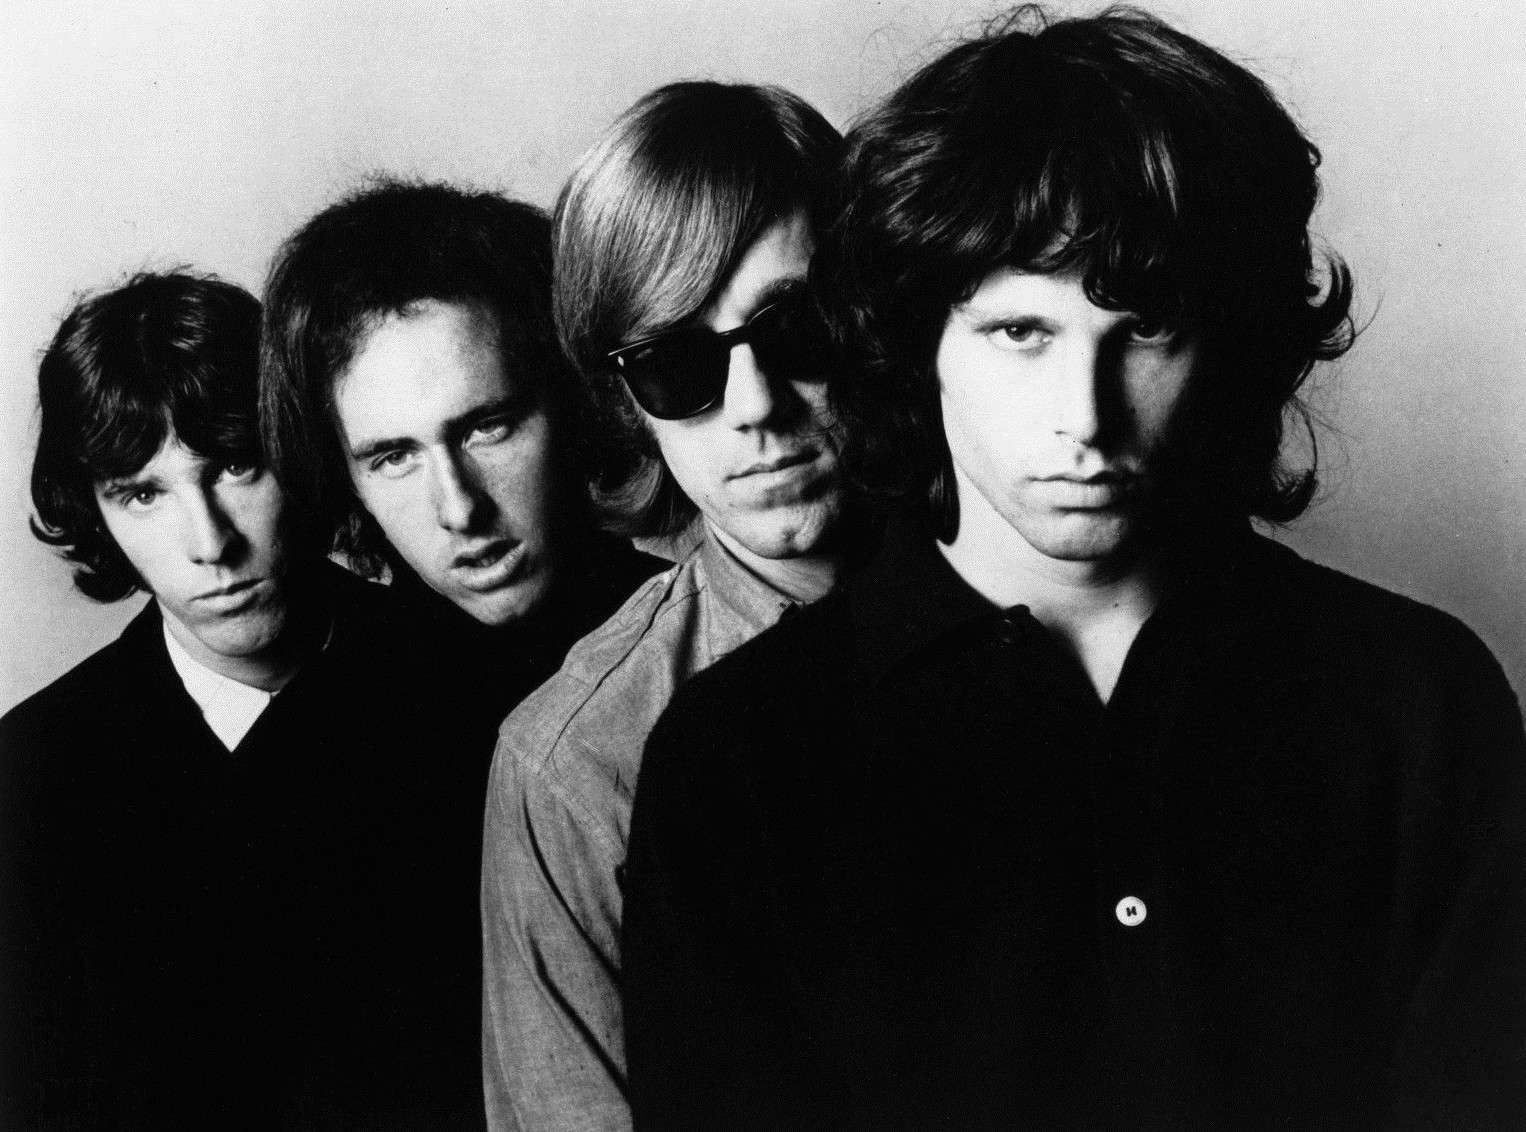 Black and white promotional photograph of The Doors with singer Jim Morrison in front.